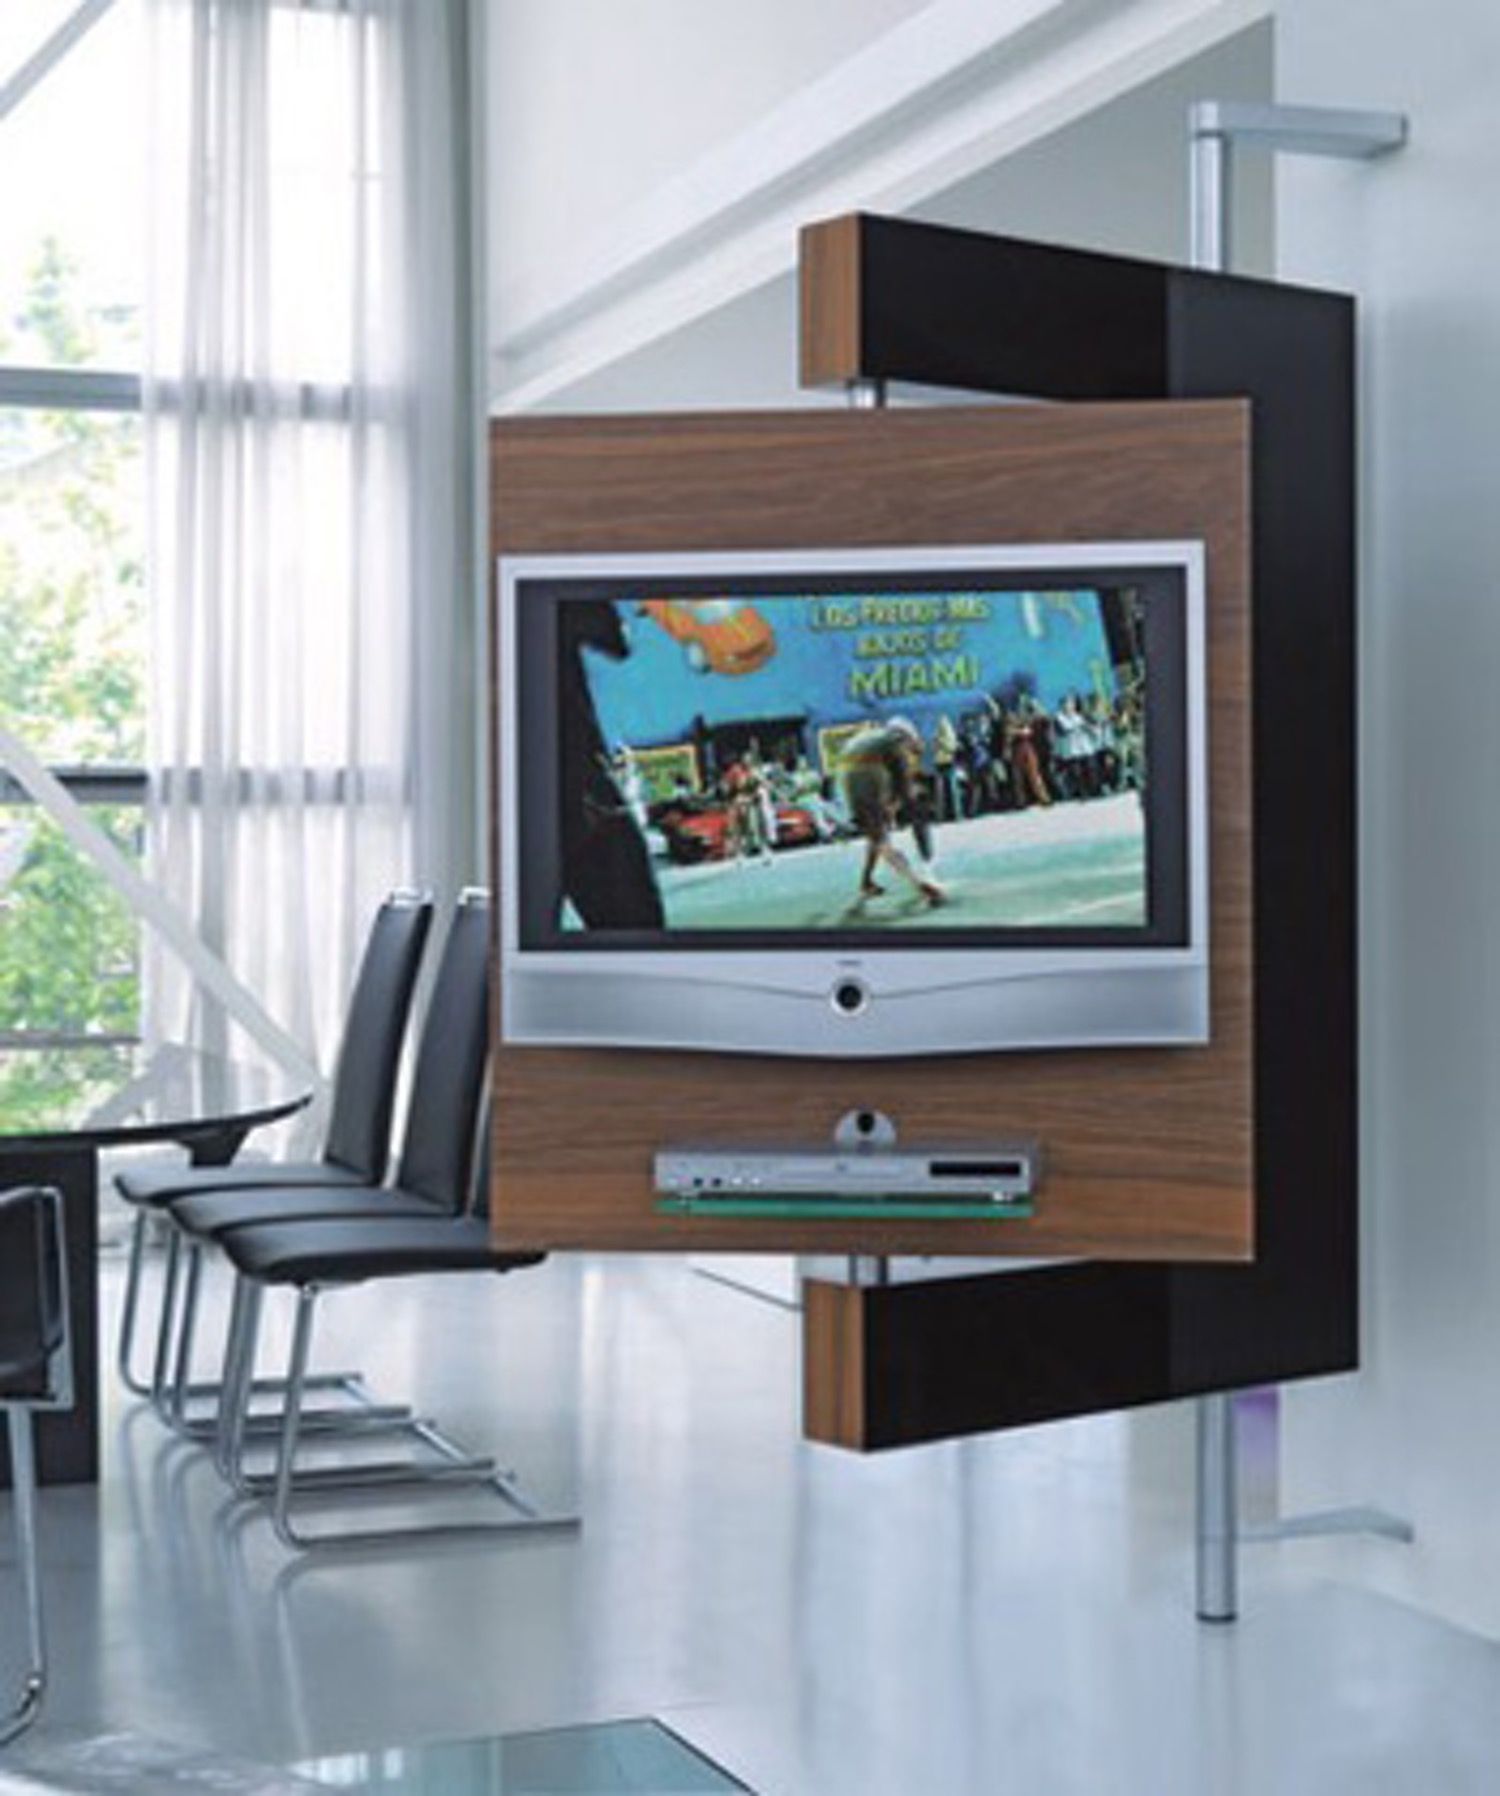 Diecollection S Media Stand Keeps Your Tv Upright And Doing The Twist Swivel Tv Tv Stand Designs Swivel Tv Stand